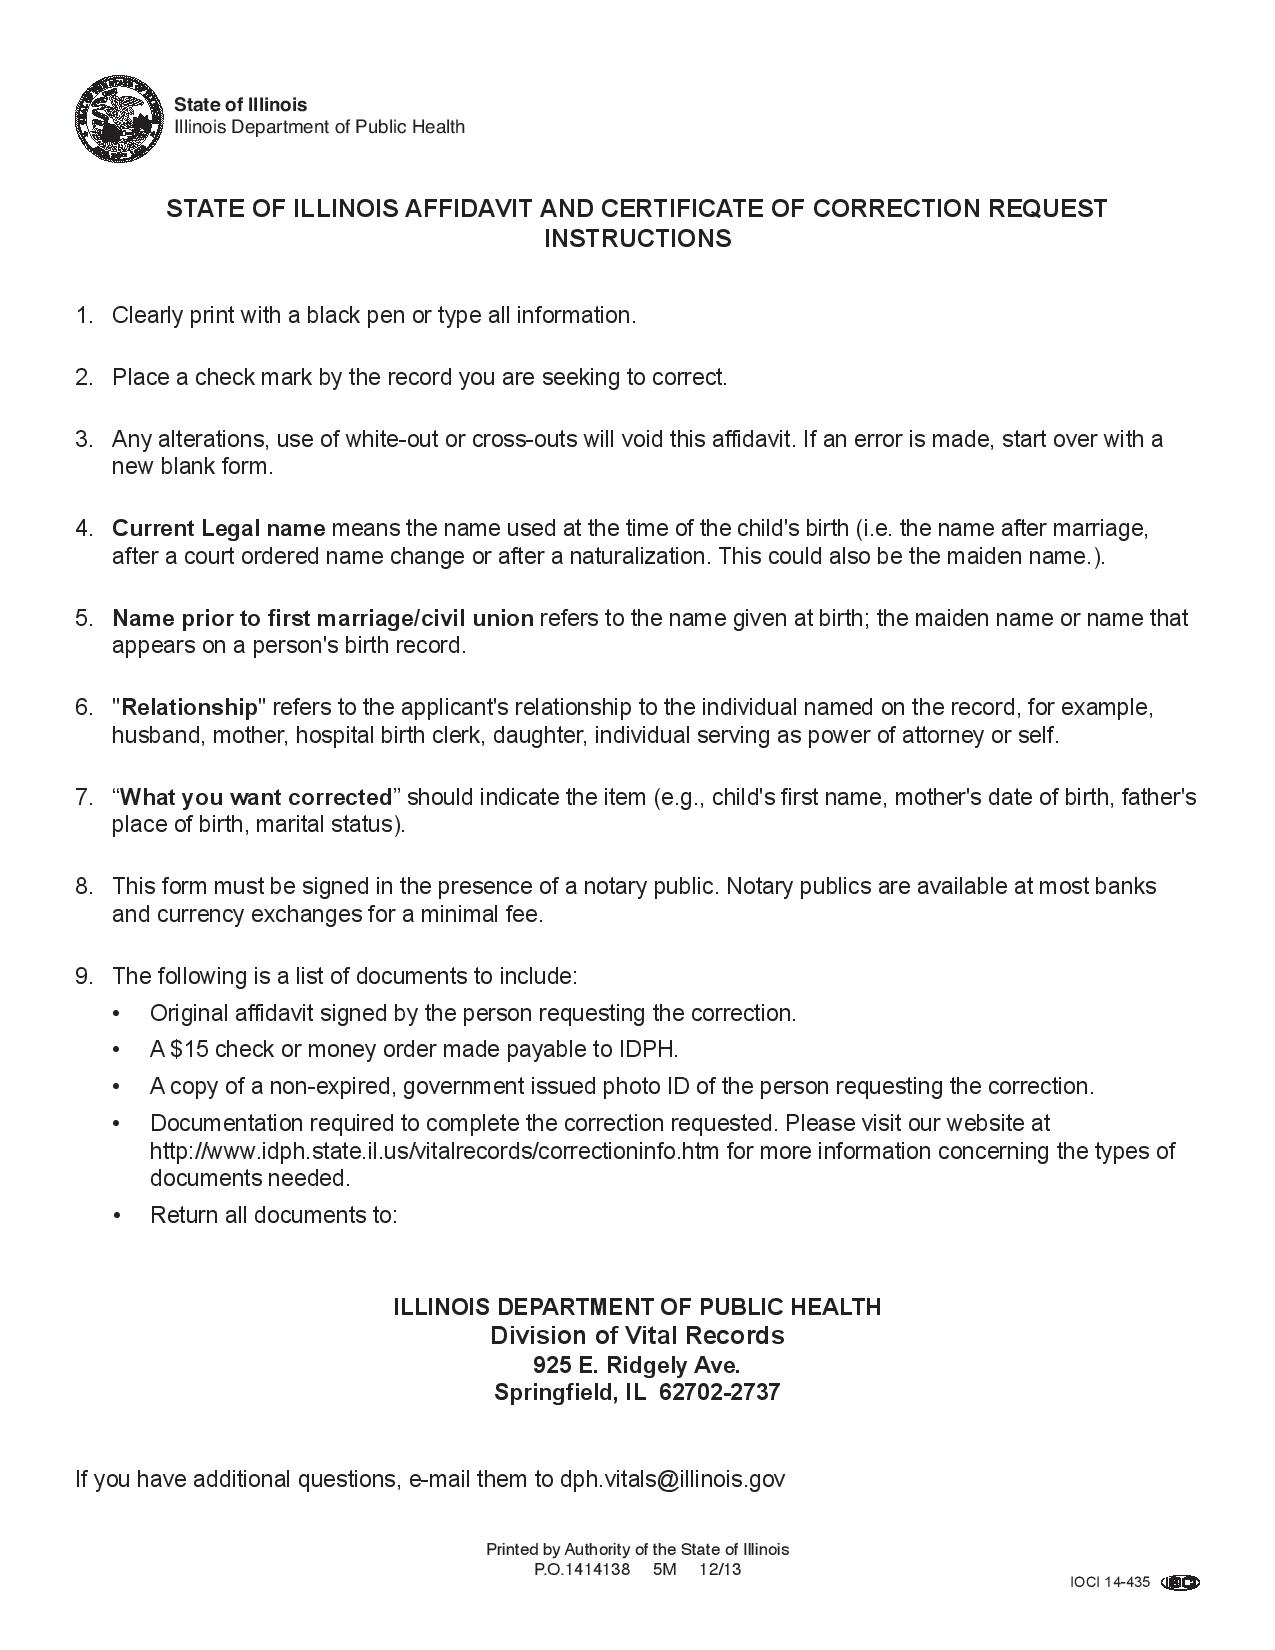 Free Illinois Affidavit And Certificate Correction Request